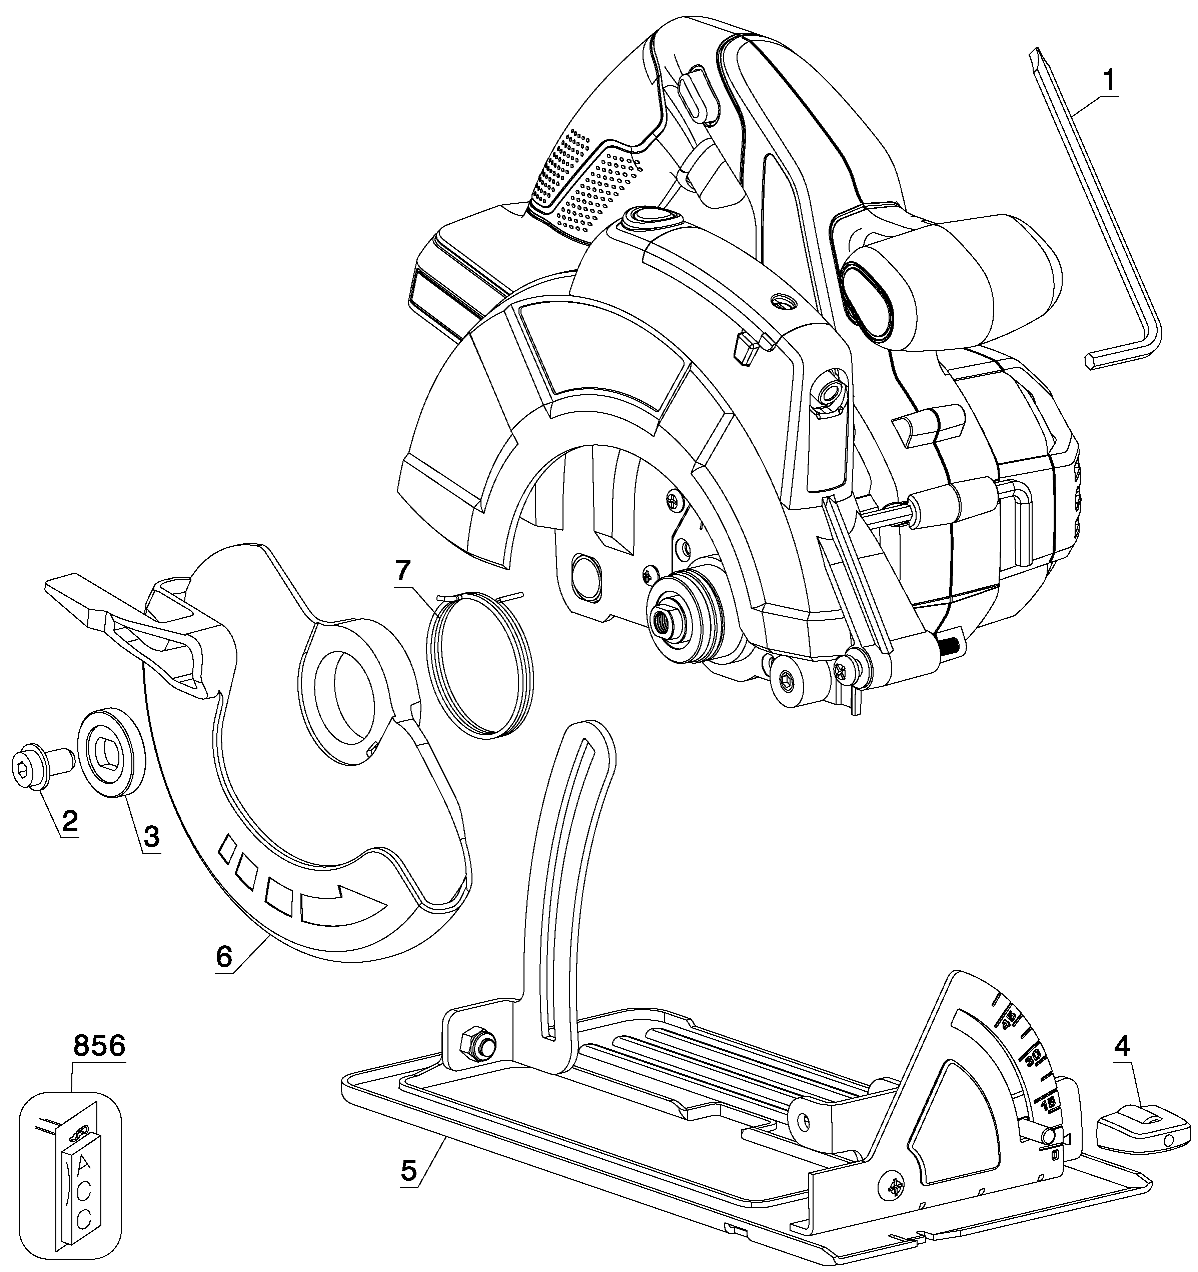 PC18CSL - Cordless Circular Saw Parts schematic